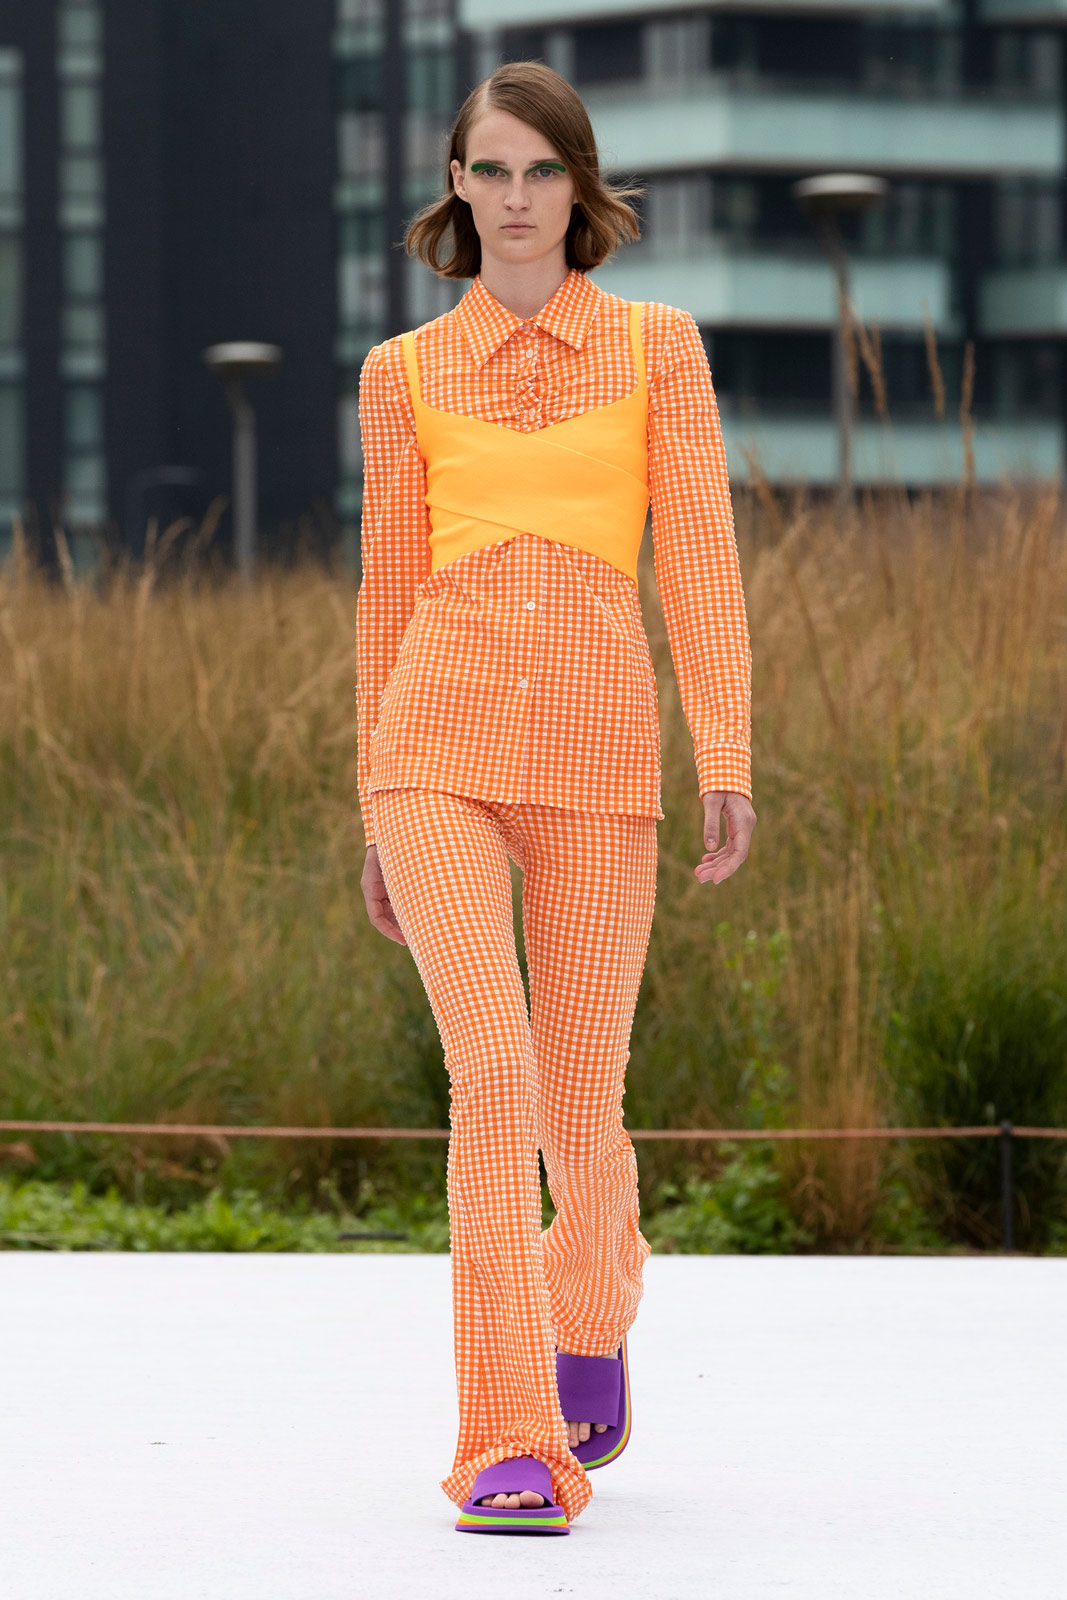 MSGM's Spring/Summer 2022 collection evokes the flirty vibrance of summer